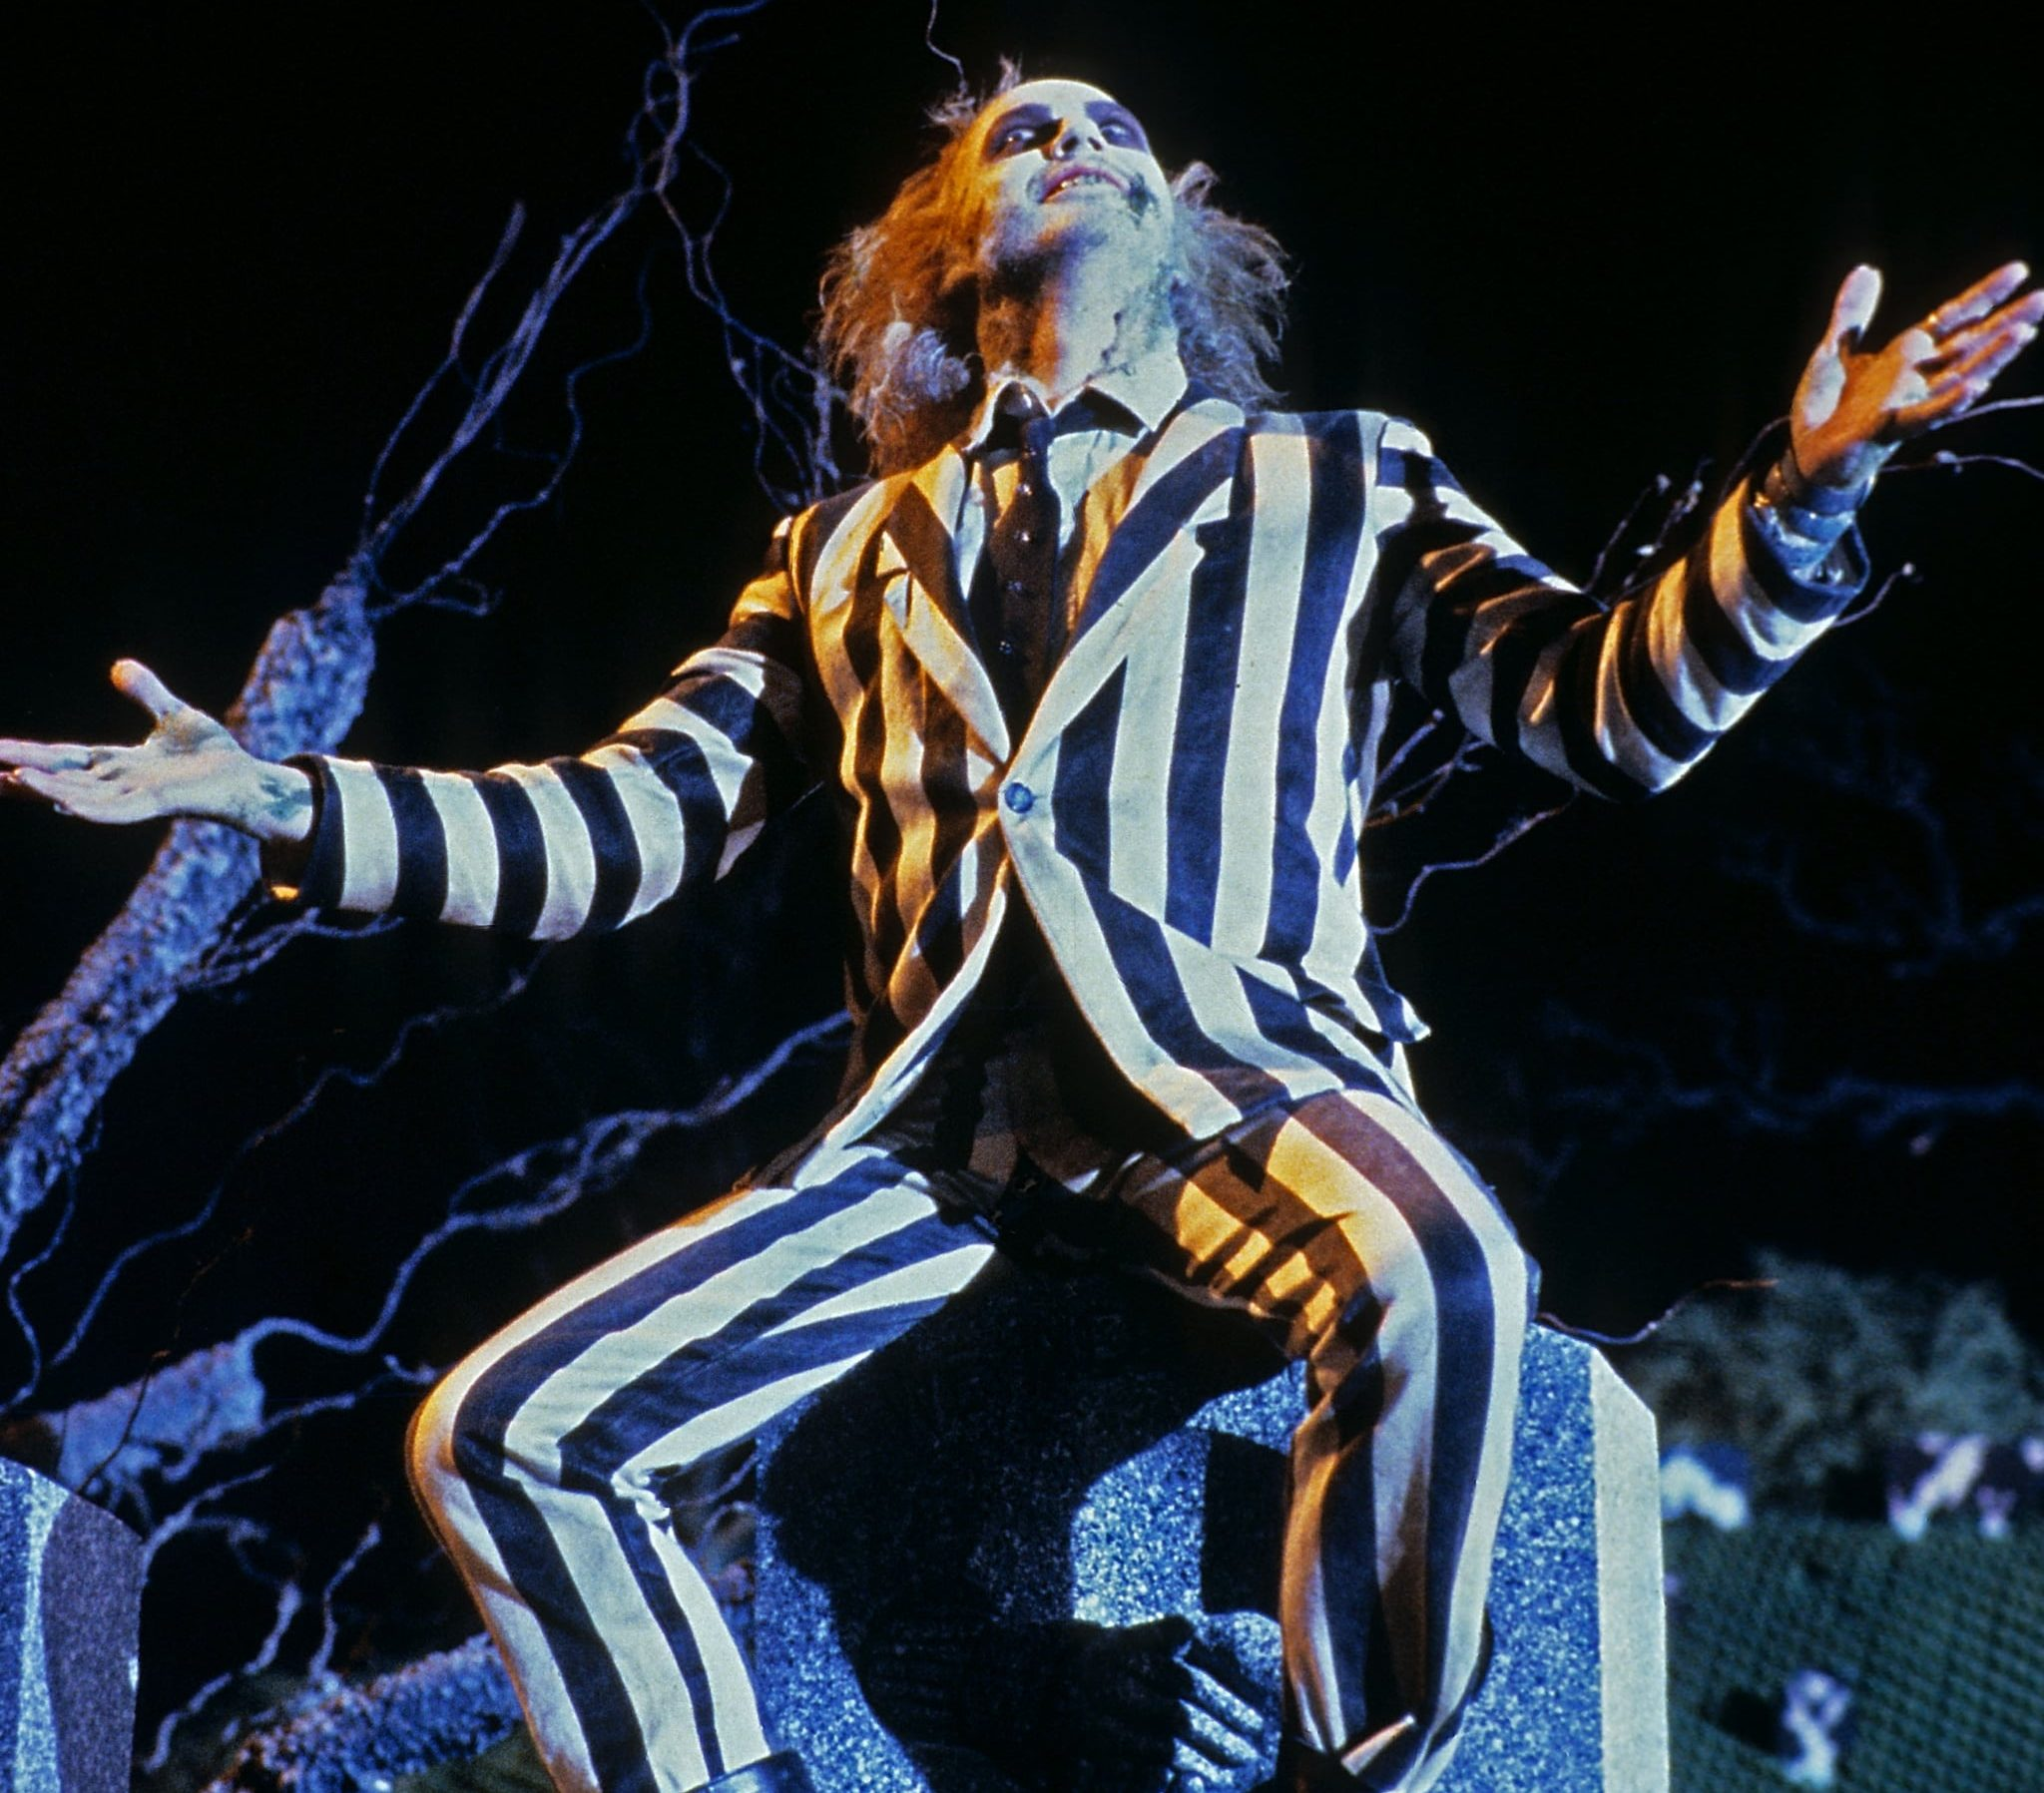 best beetlejuice movie scenes e1616586572149 20 Films That Prove The 1980s Was The Greatest Decade